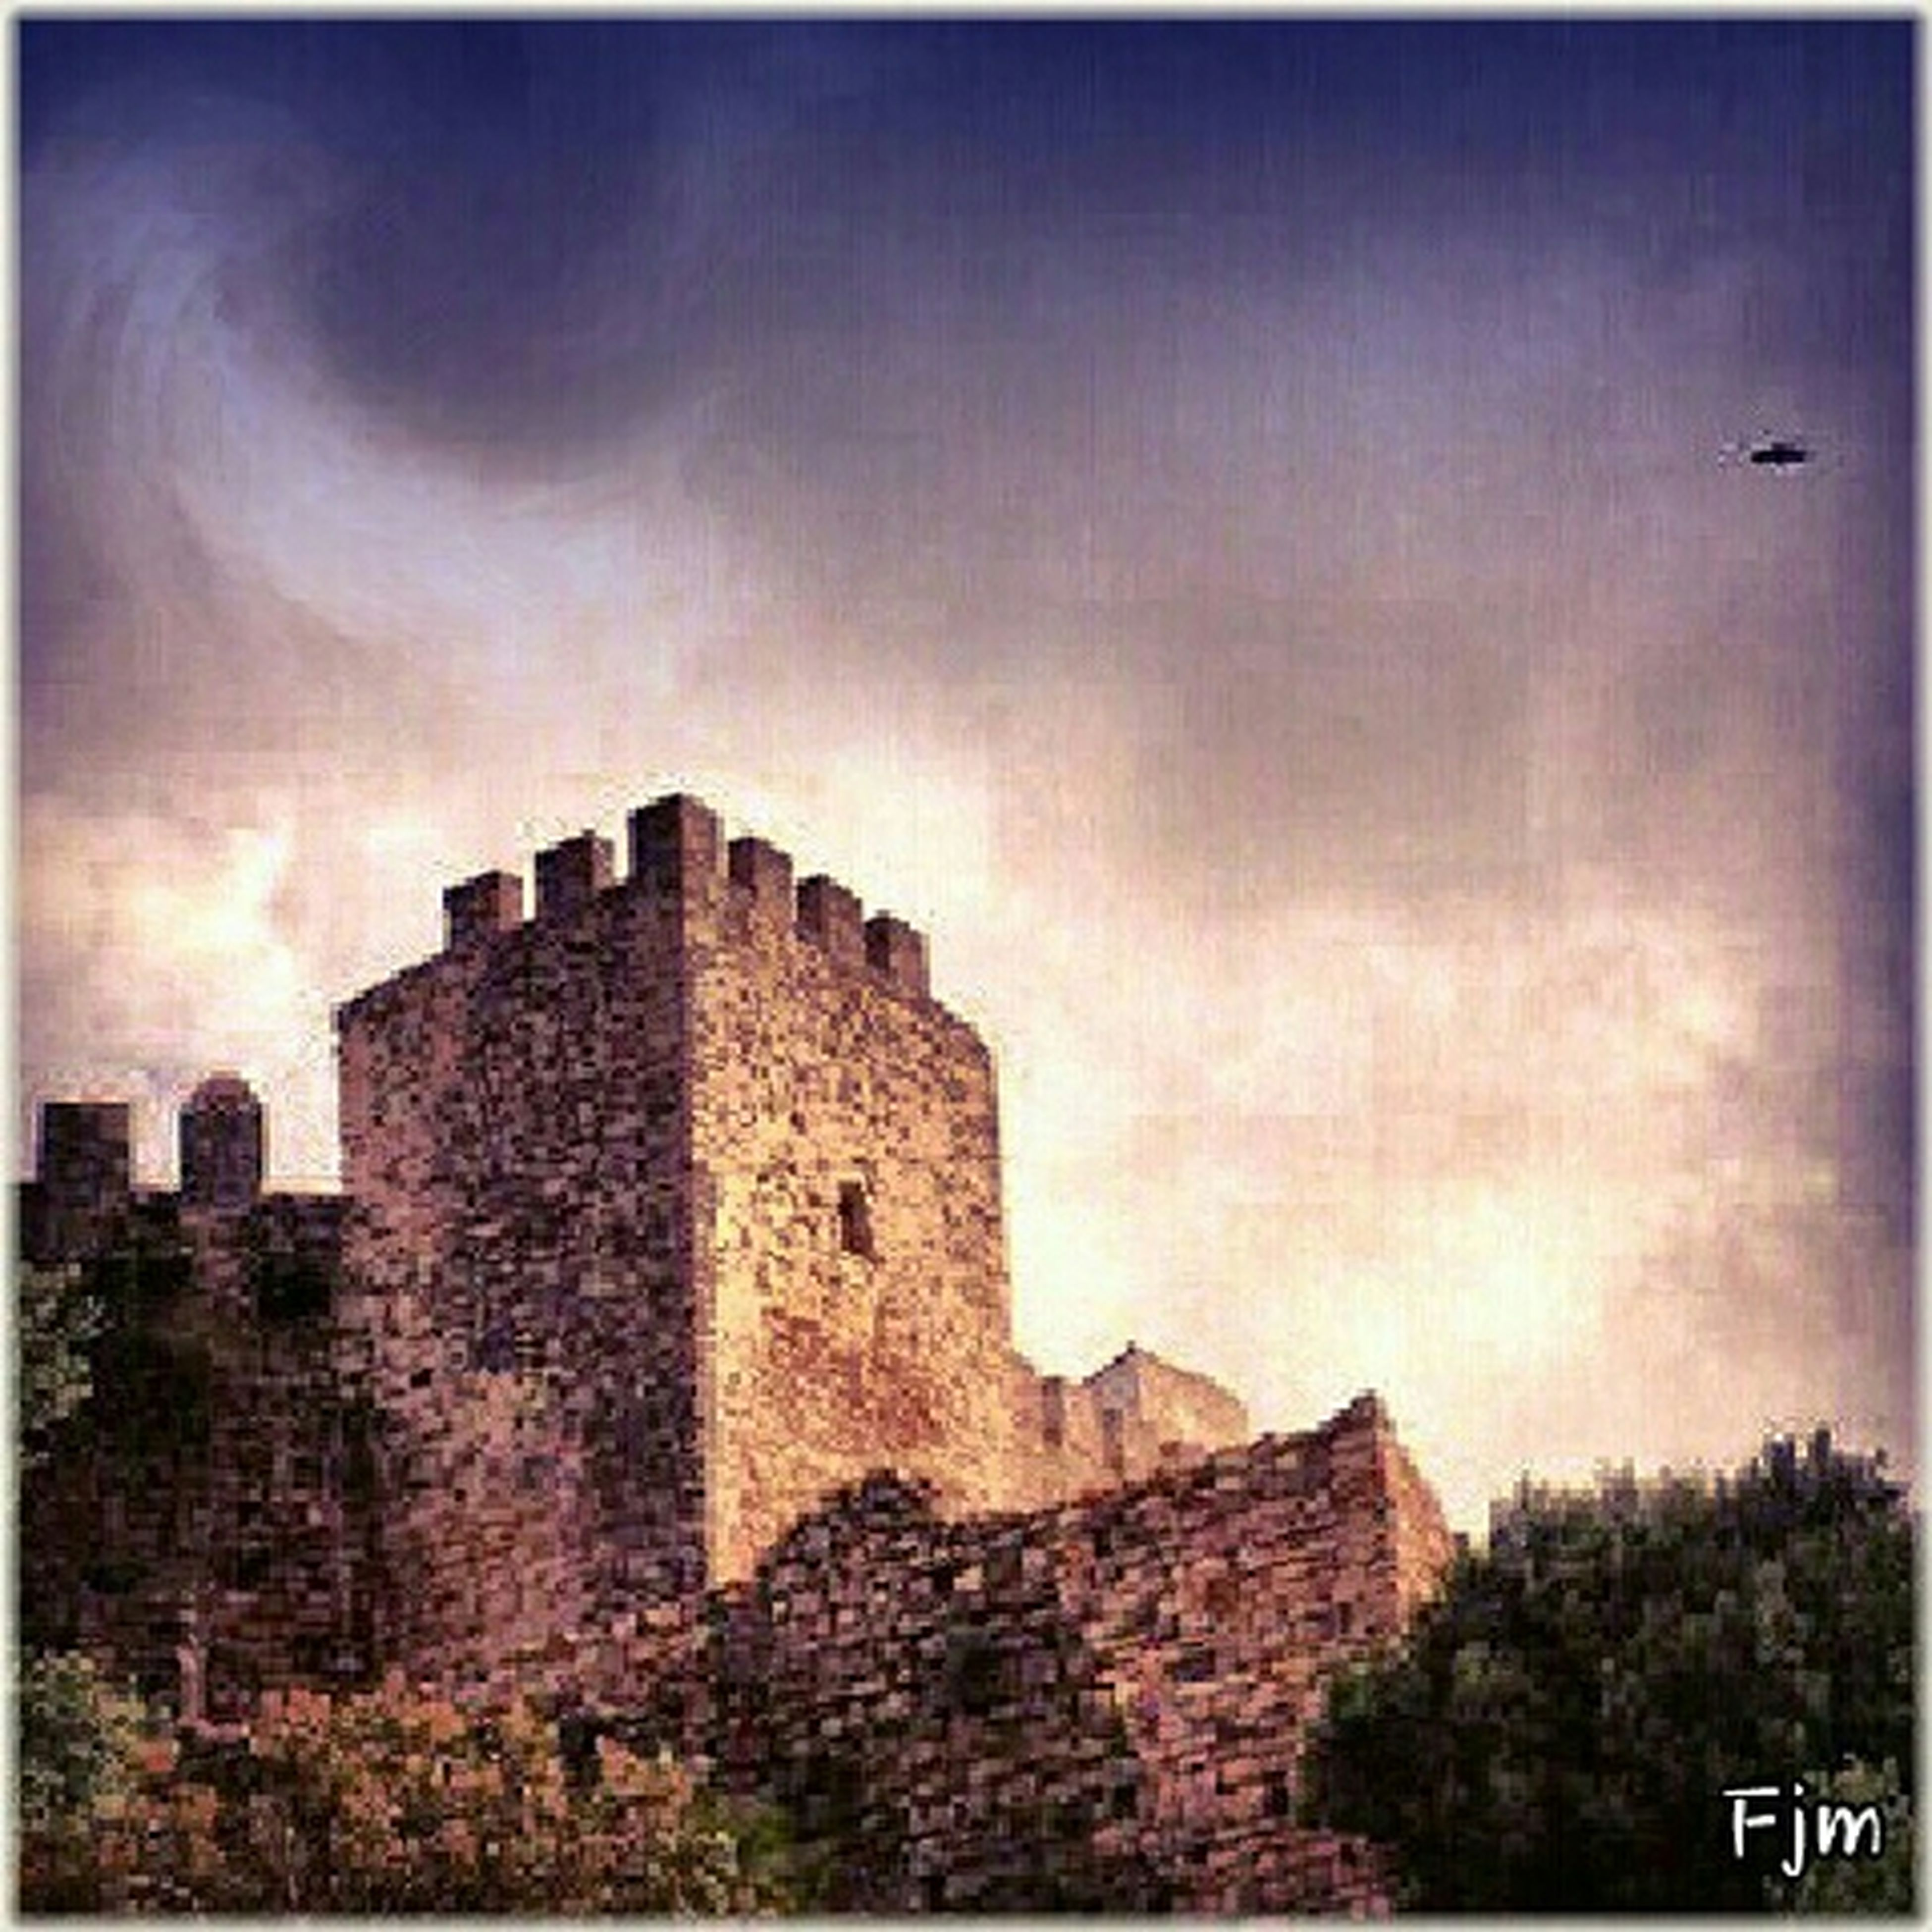 architecture, built structure, building exterior, sky, low angle view, history, old, auto post production filter, transfer print, castle, the past, old ruin, stone wall, cloud - sky, ancient, outdoors, no people, damaged, tower, exterior